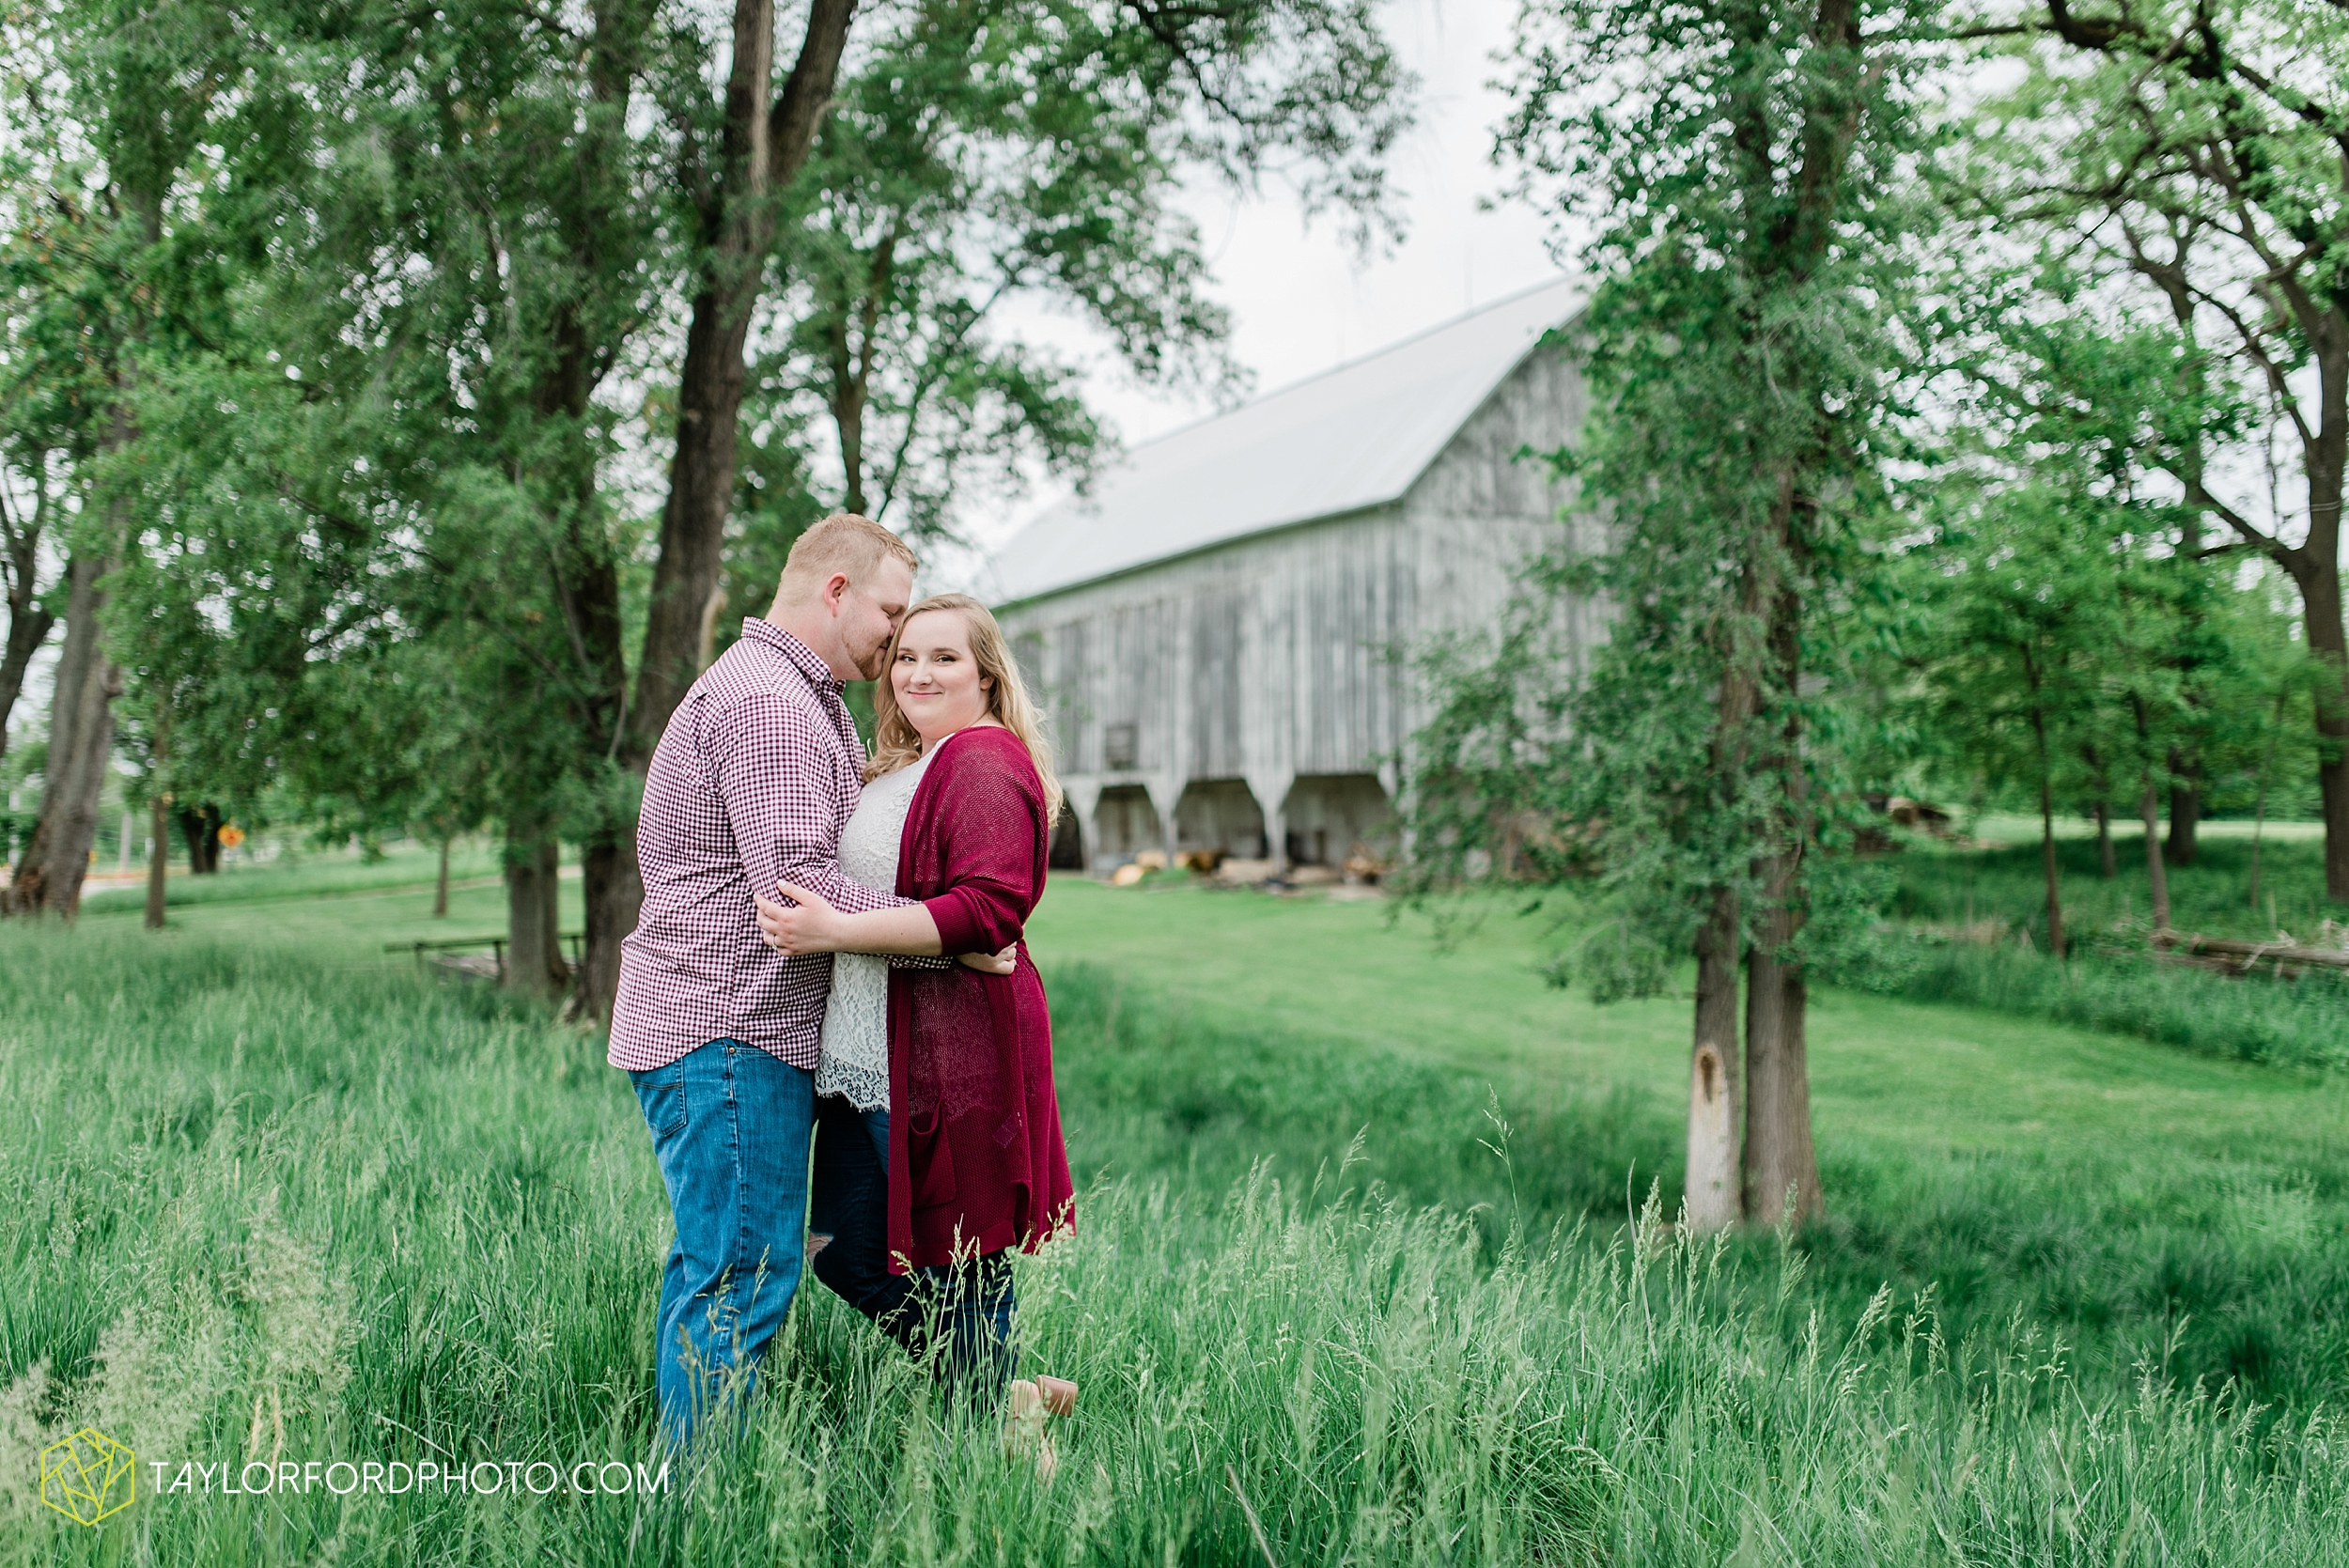 downtown-ipfw-fort-wayne-indiana-engagement-photographer-Taylor-Ford-Photography_7510.jpg